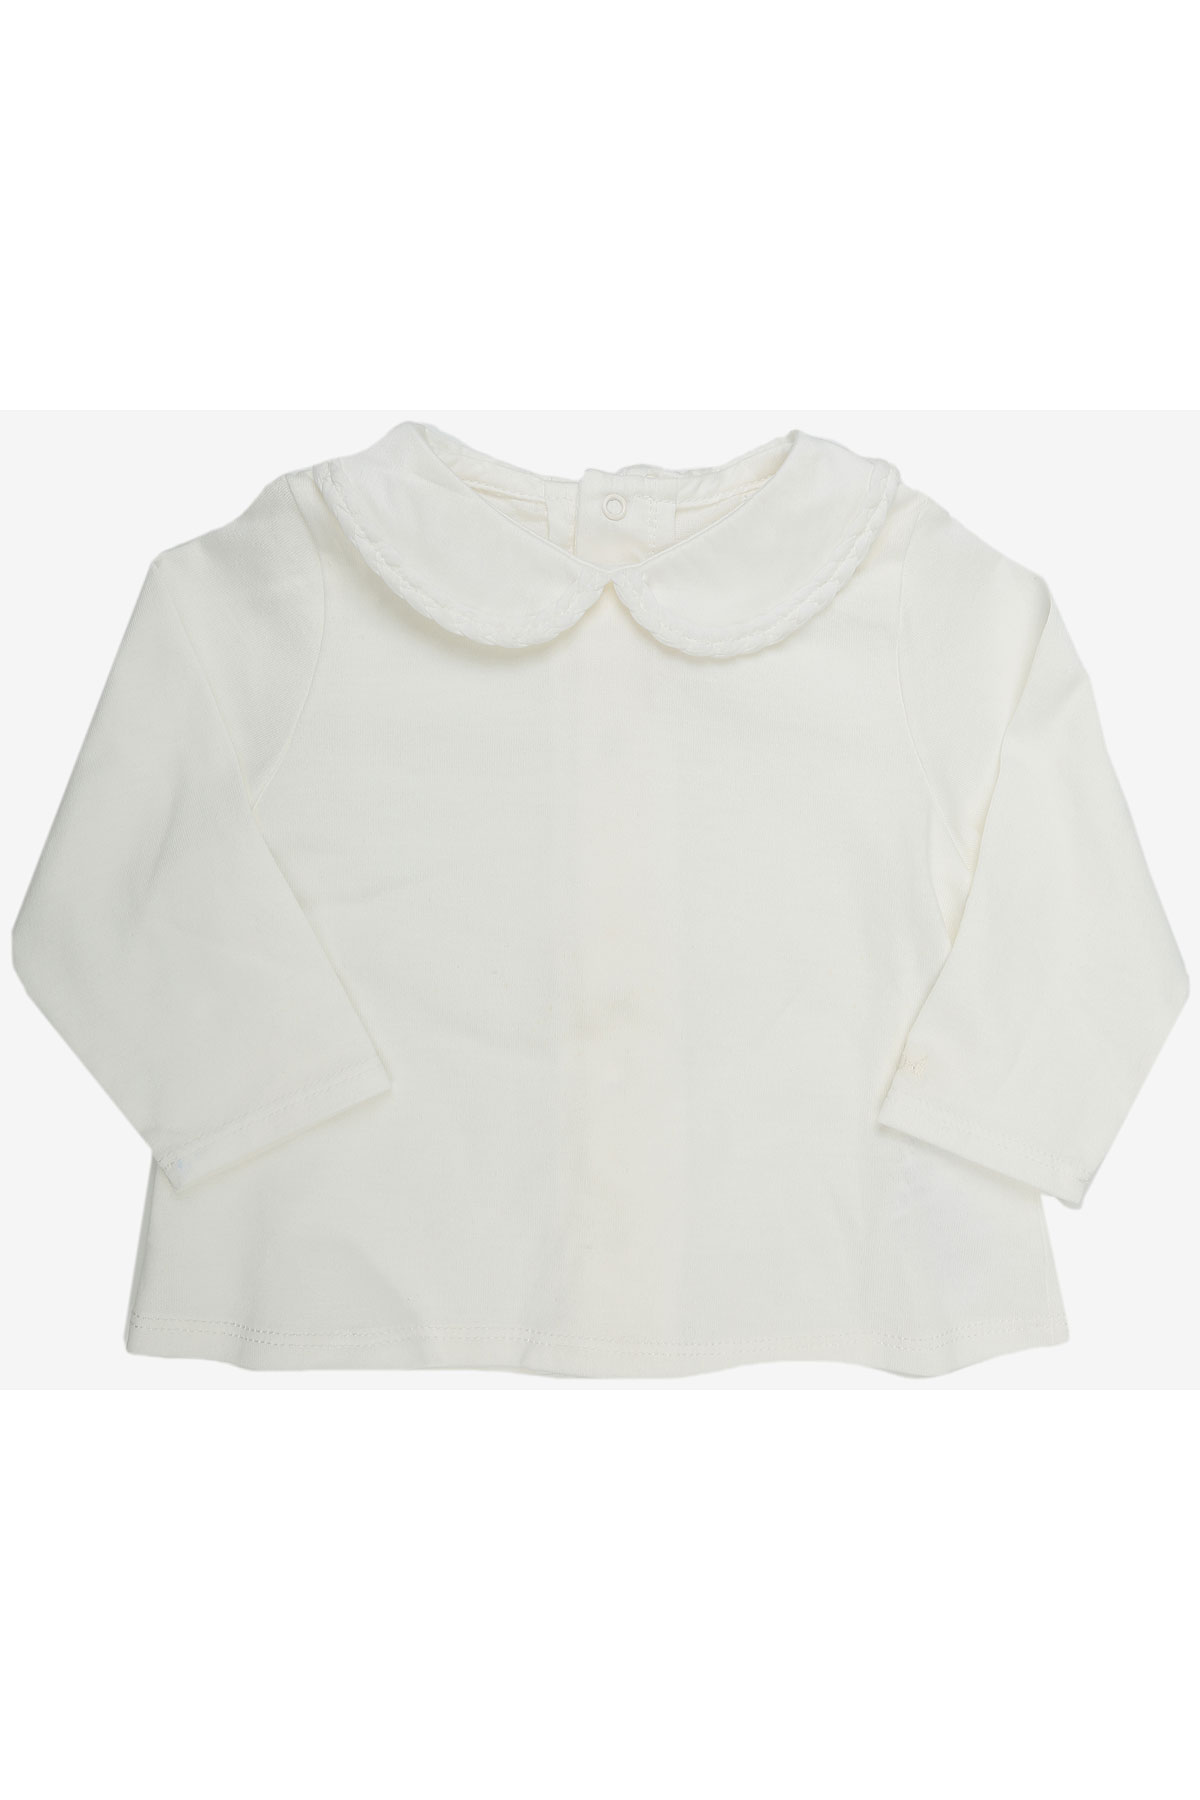 Chloe Baby Polo Shirt for Girls On Sale in Outlet, White, Cotton, 2019, 3M 6M